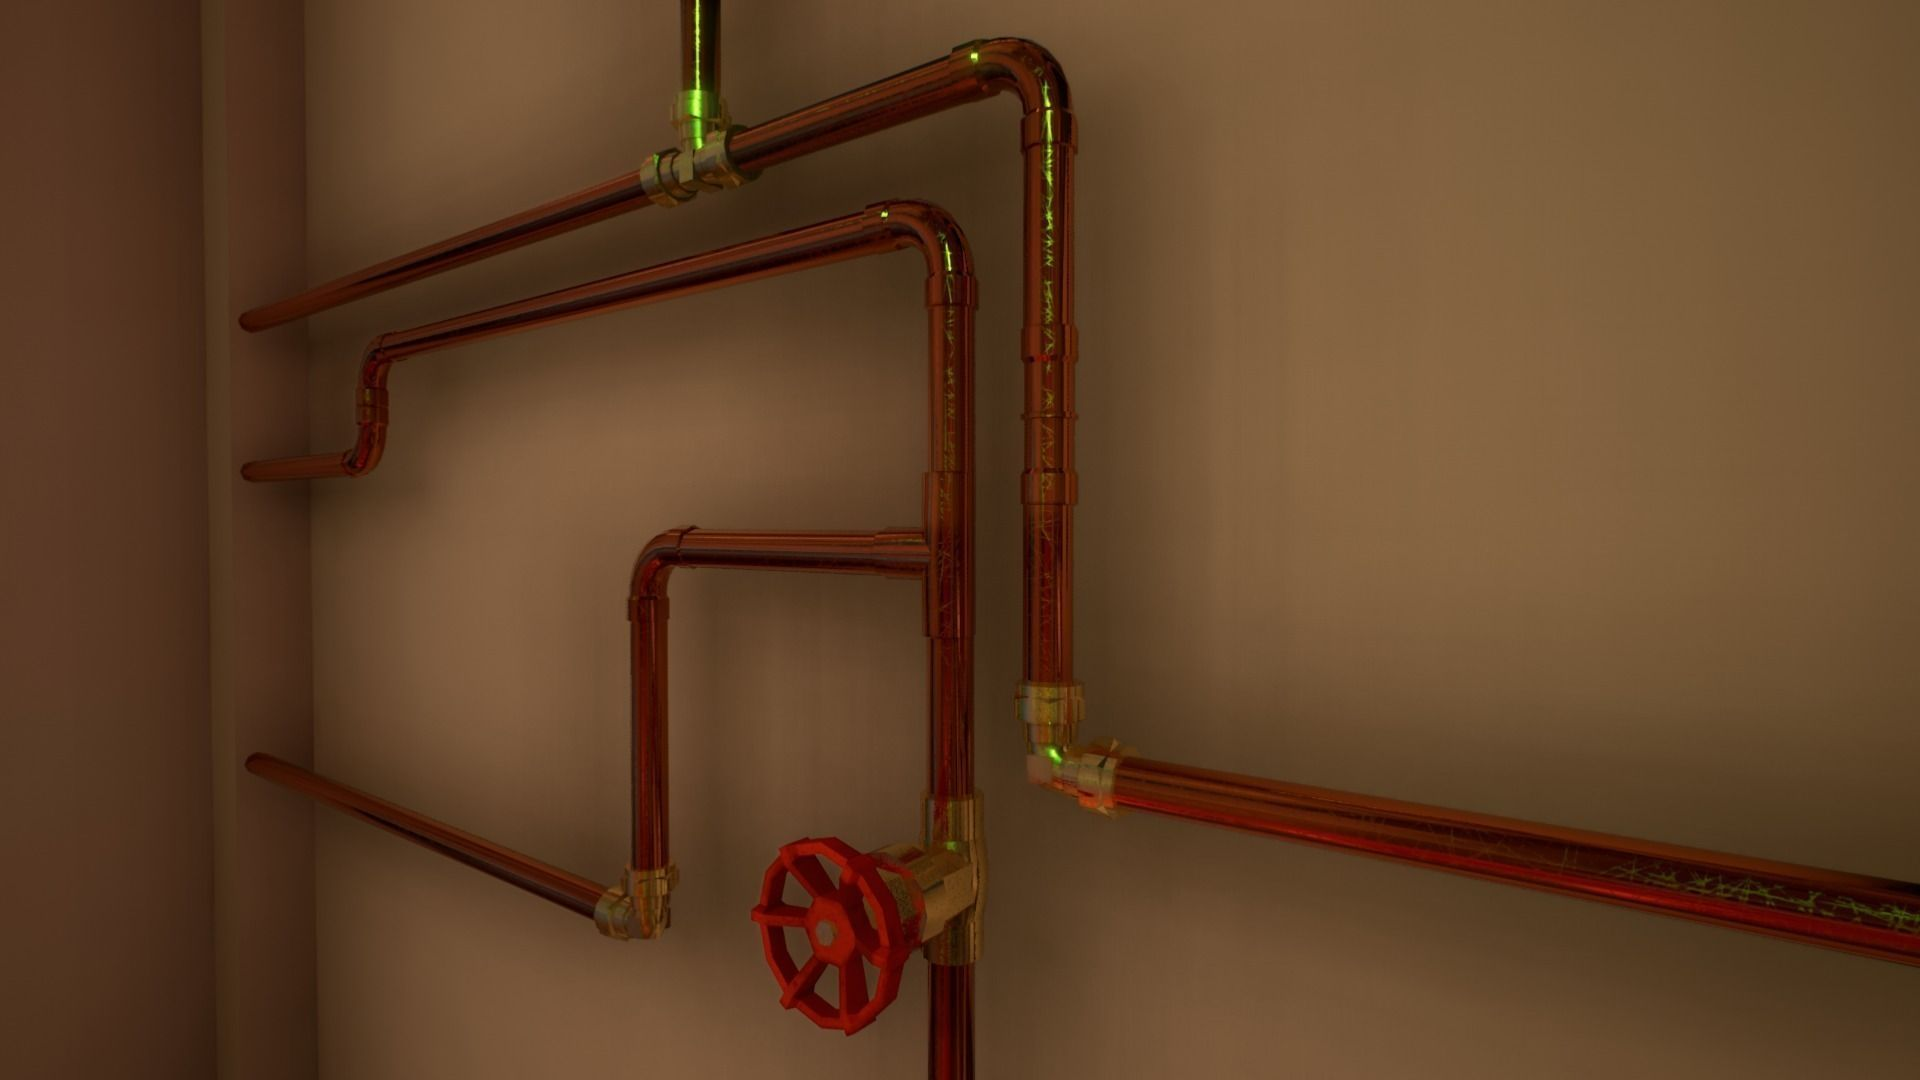 Pipes and ventilations